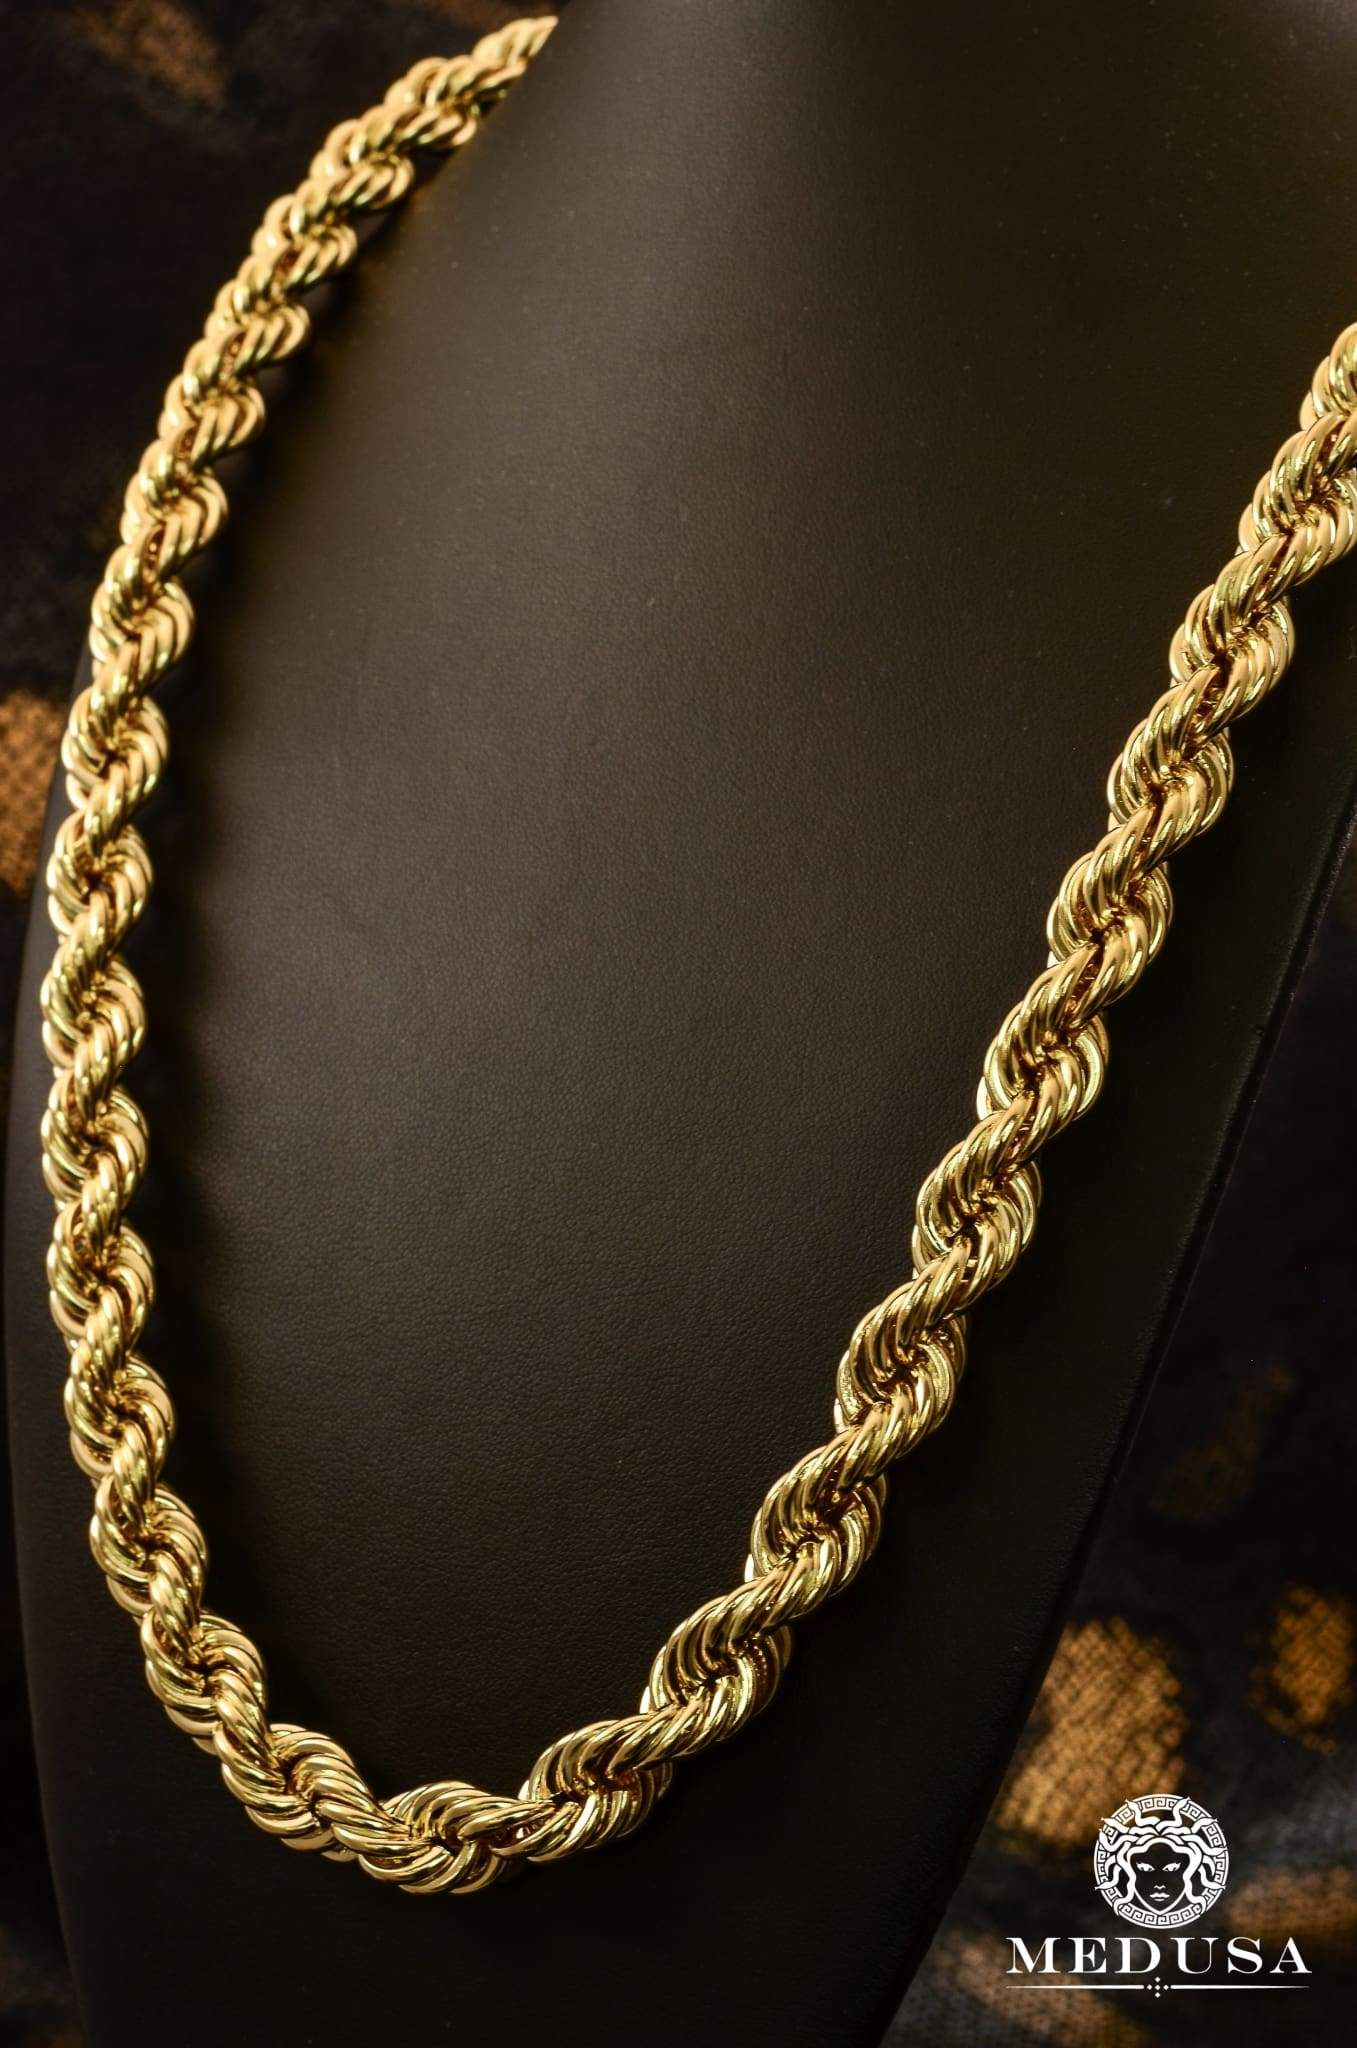 Gold Chain Designs For Mens With Weight Gold Chain Designs With Price And Weight Gold Chain Design Catalogu Chains For Men Gold Plated Chains Gold Chain Design